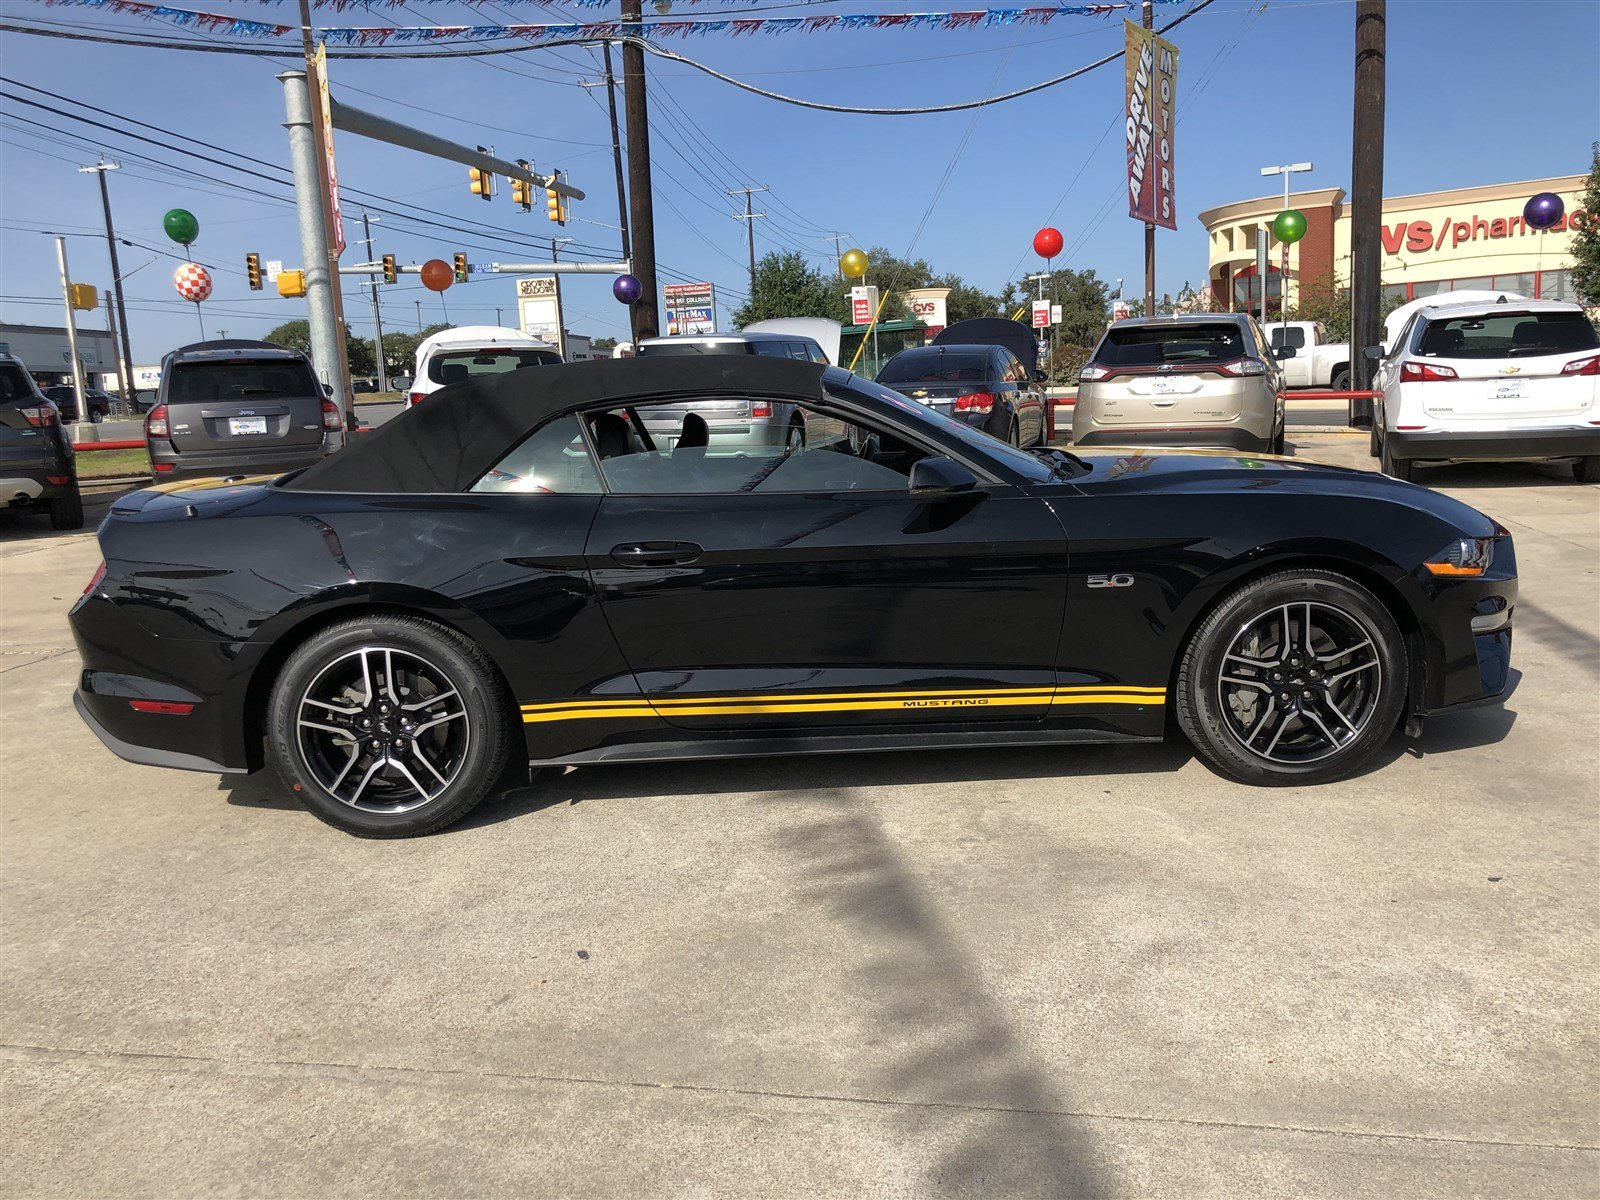 Pre Owned 2018 Ford Mustang GT Premium Convertible in San Antonio